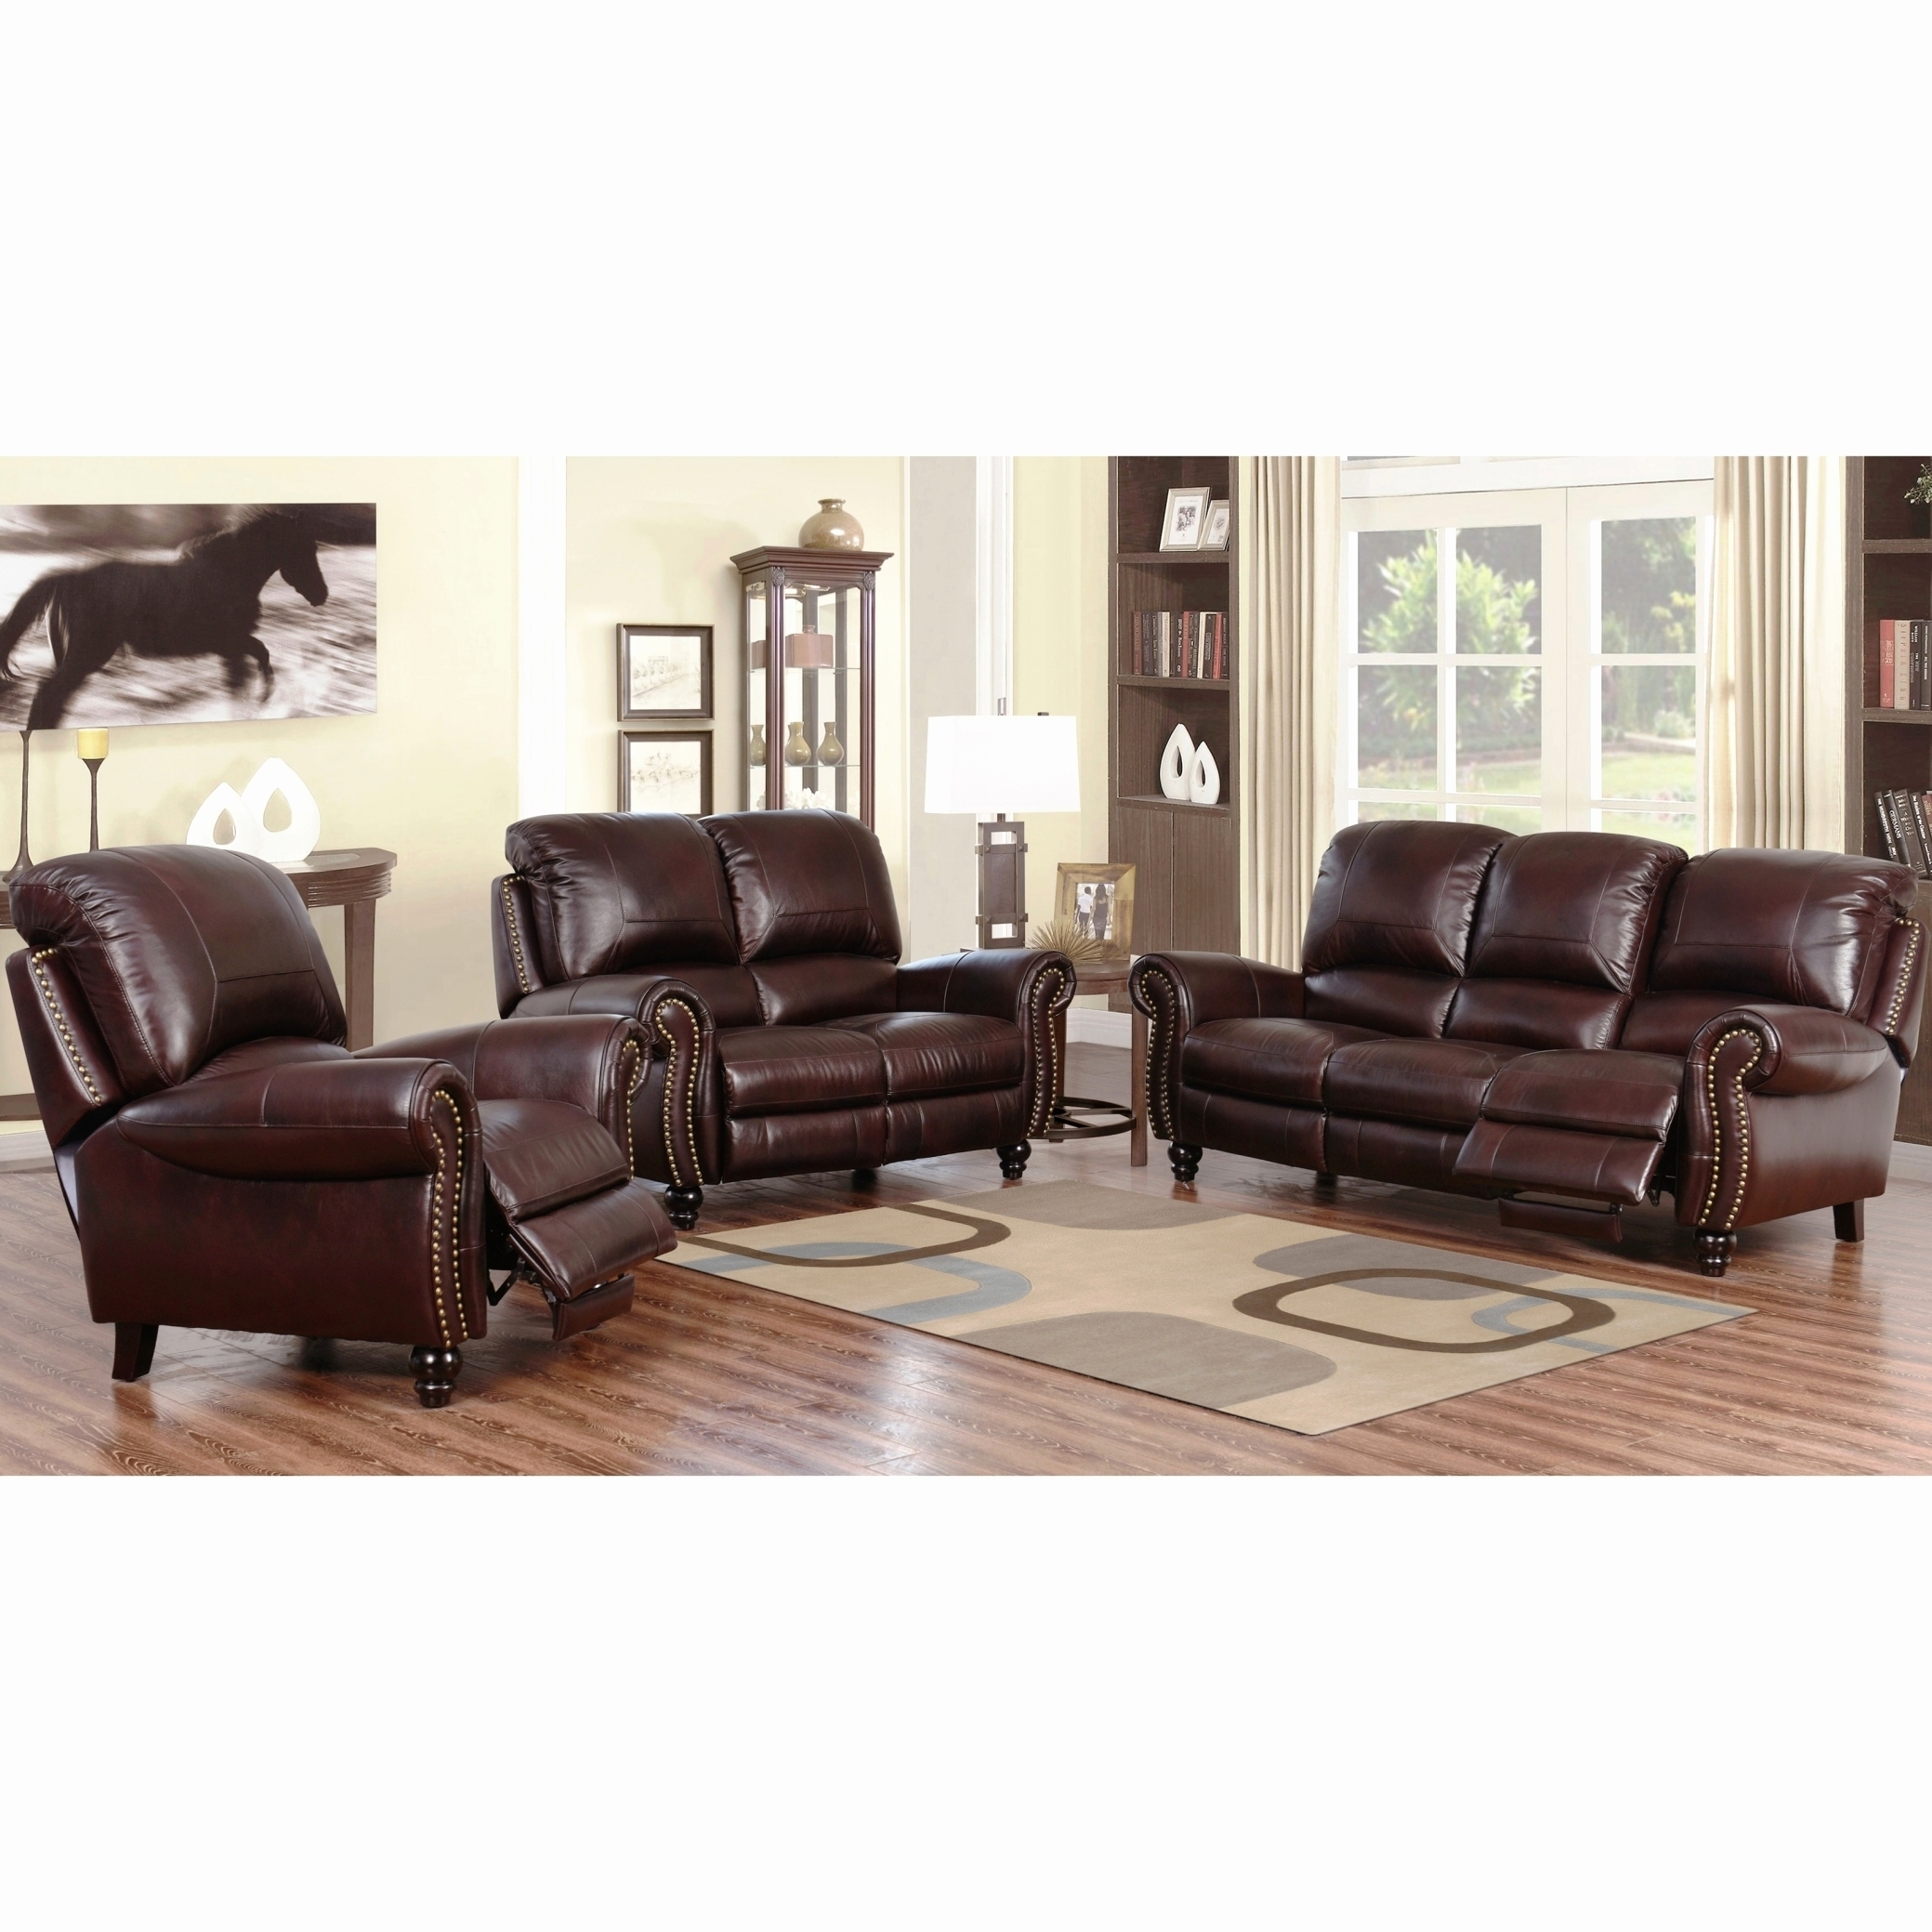 32 Enchanting Overstock Sectional Sofas Pictures – Sectional Sofa In Overstock Sectional Sofas (Photo 10 of 10)